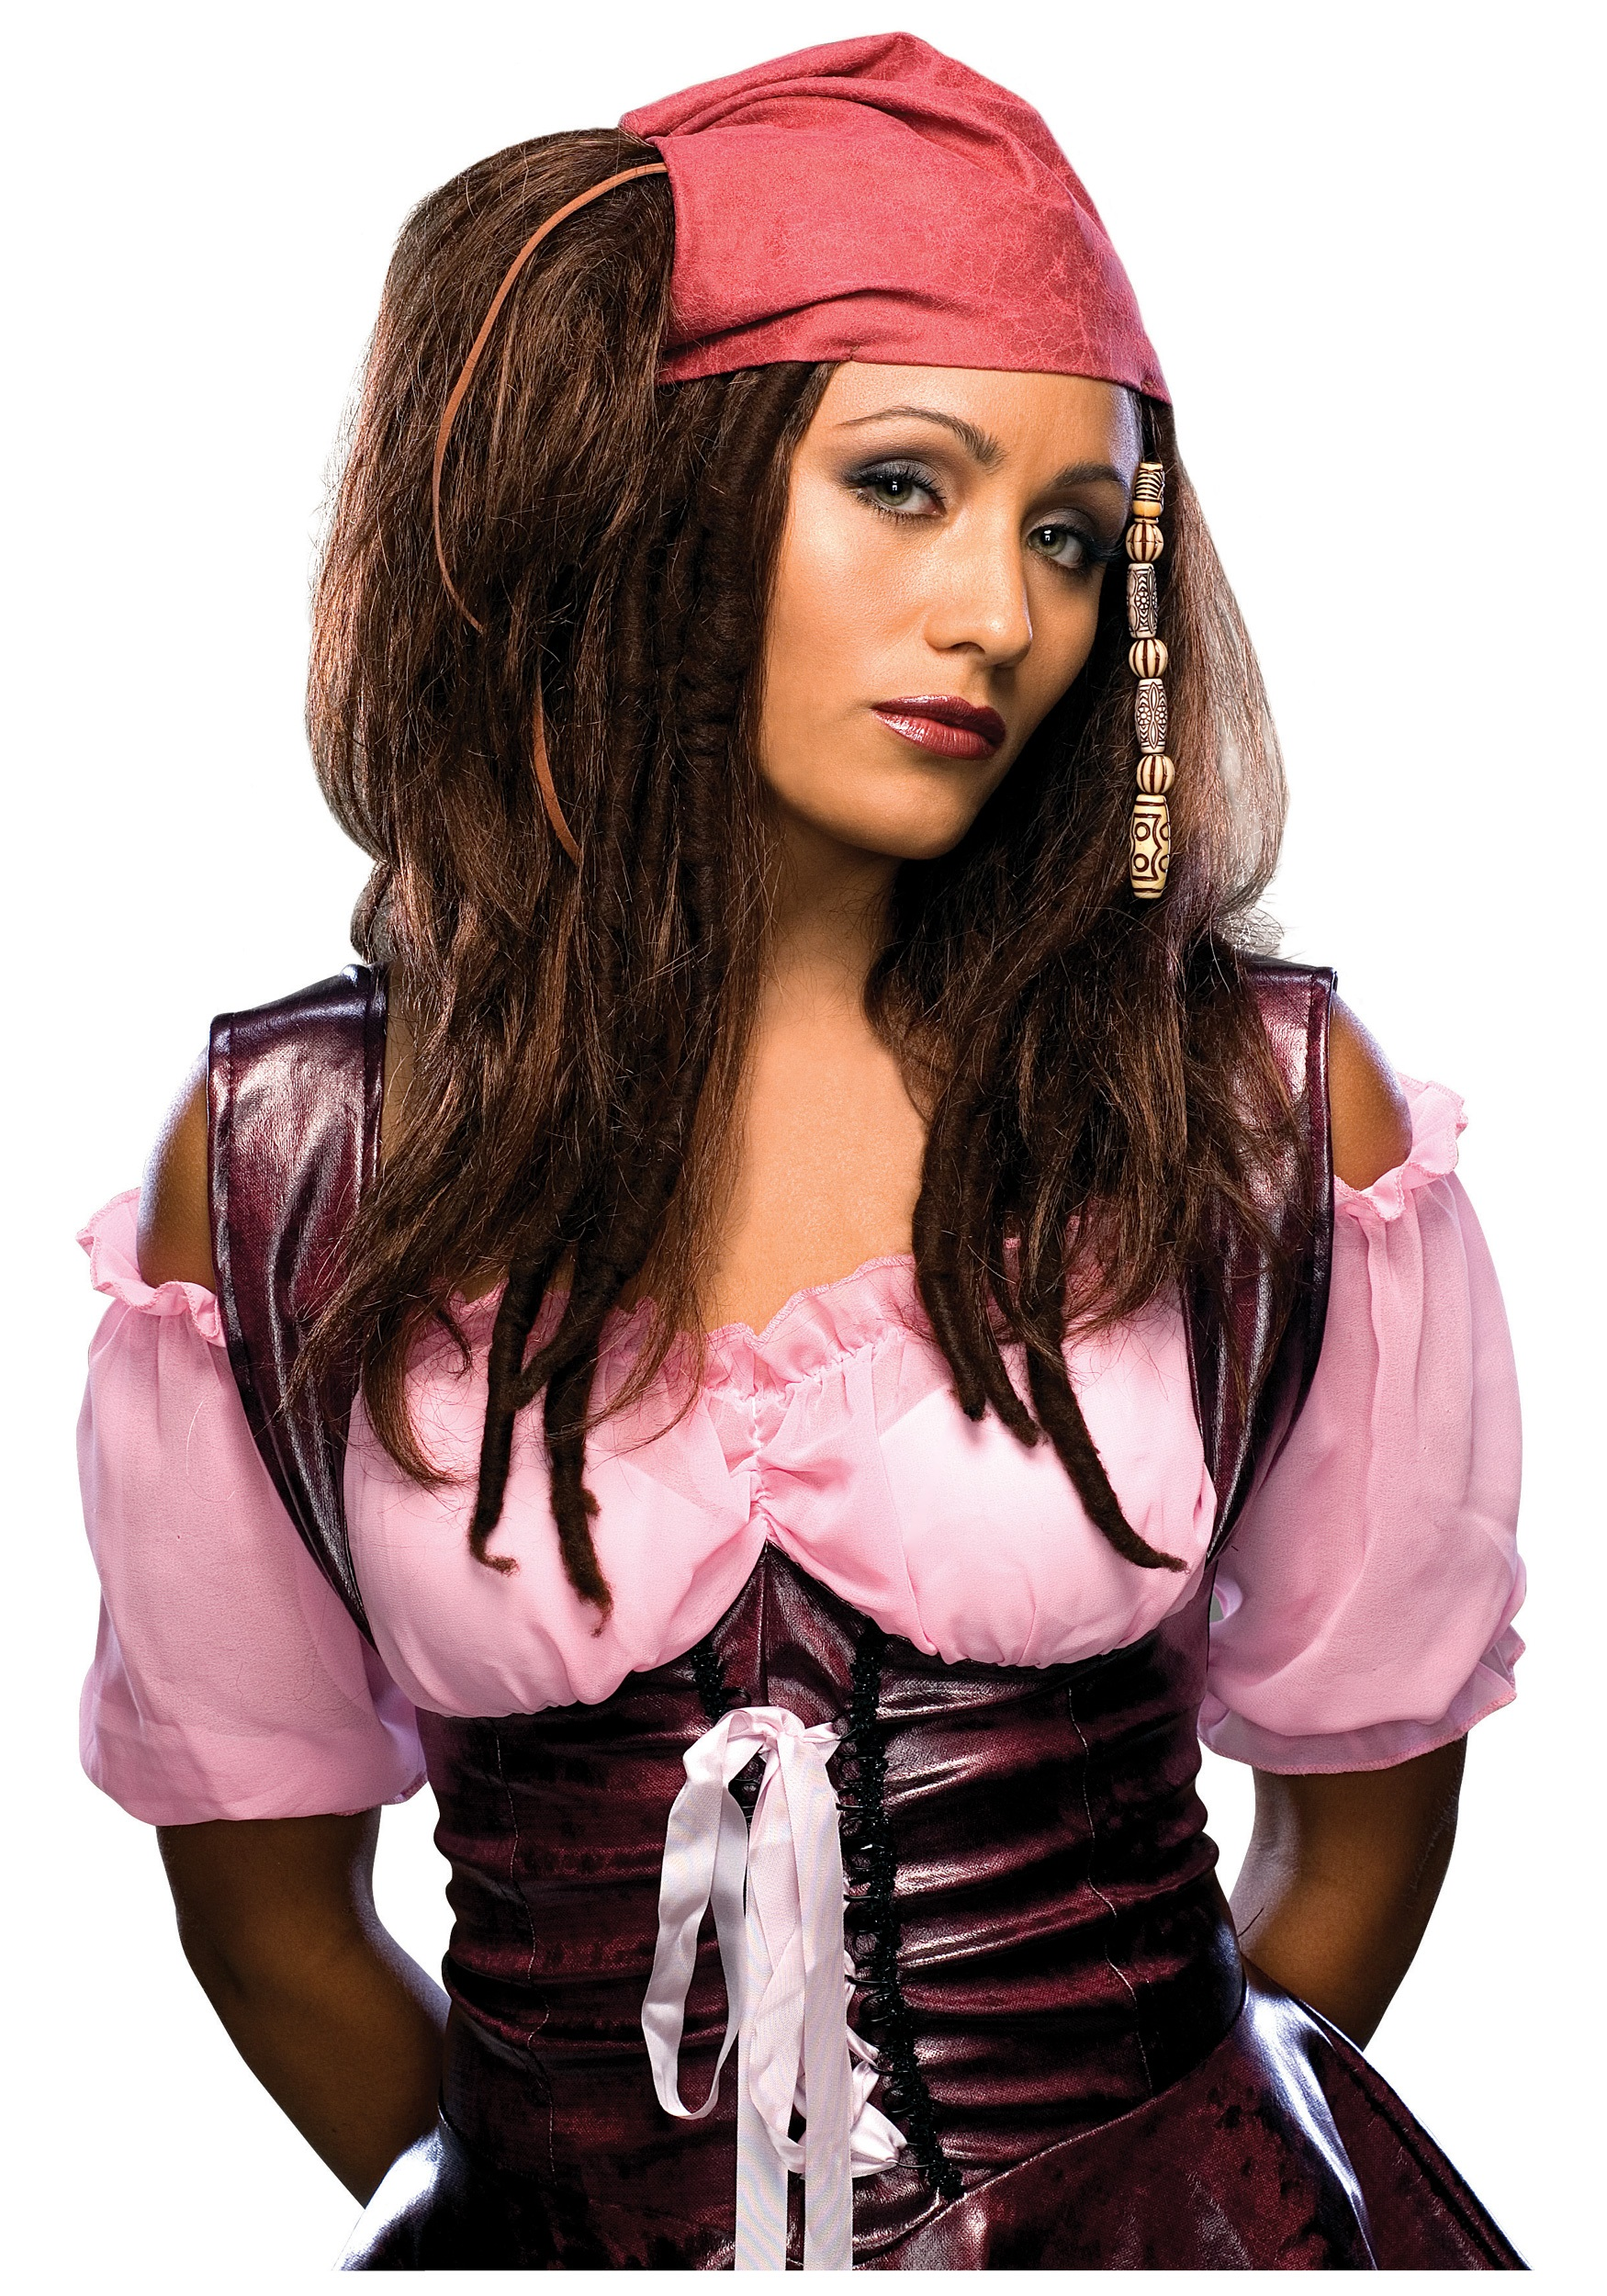 Saucy Pirate Wig  sc 1 st  Halloween Costume & Saucy Pirate Wig - Sassy Sea Wench Costume Accessory